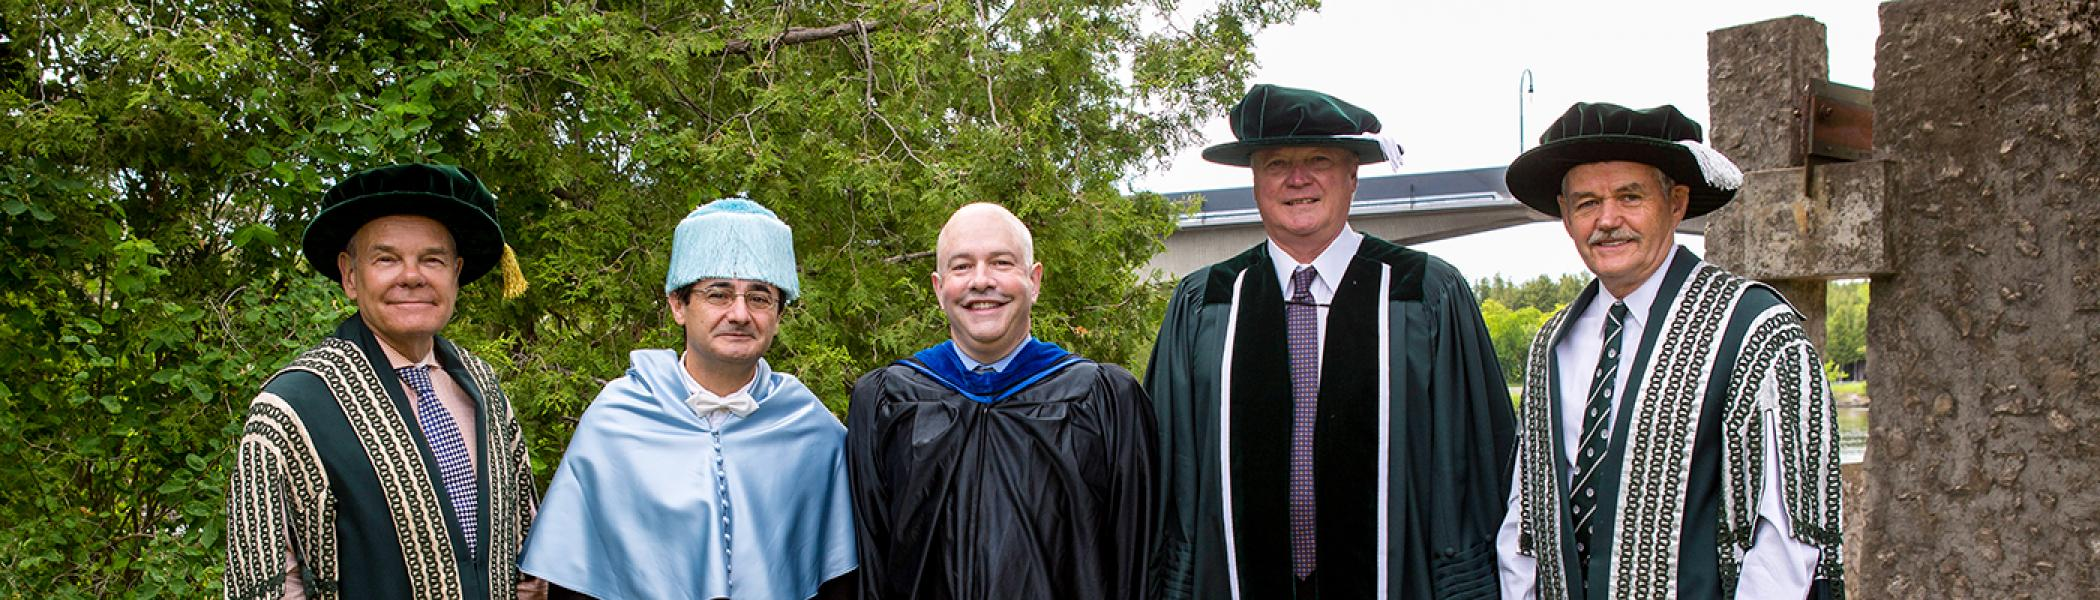 Convocation award winners posing with Dr. Don Tapscott and Leo Groarke in front of the Faryon bridge